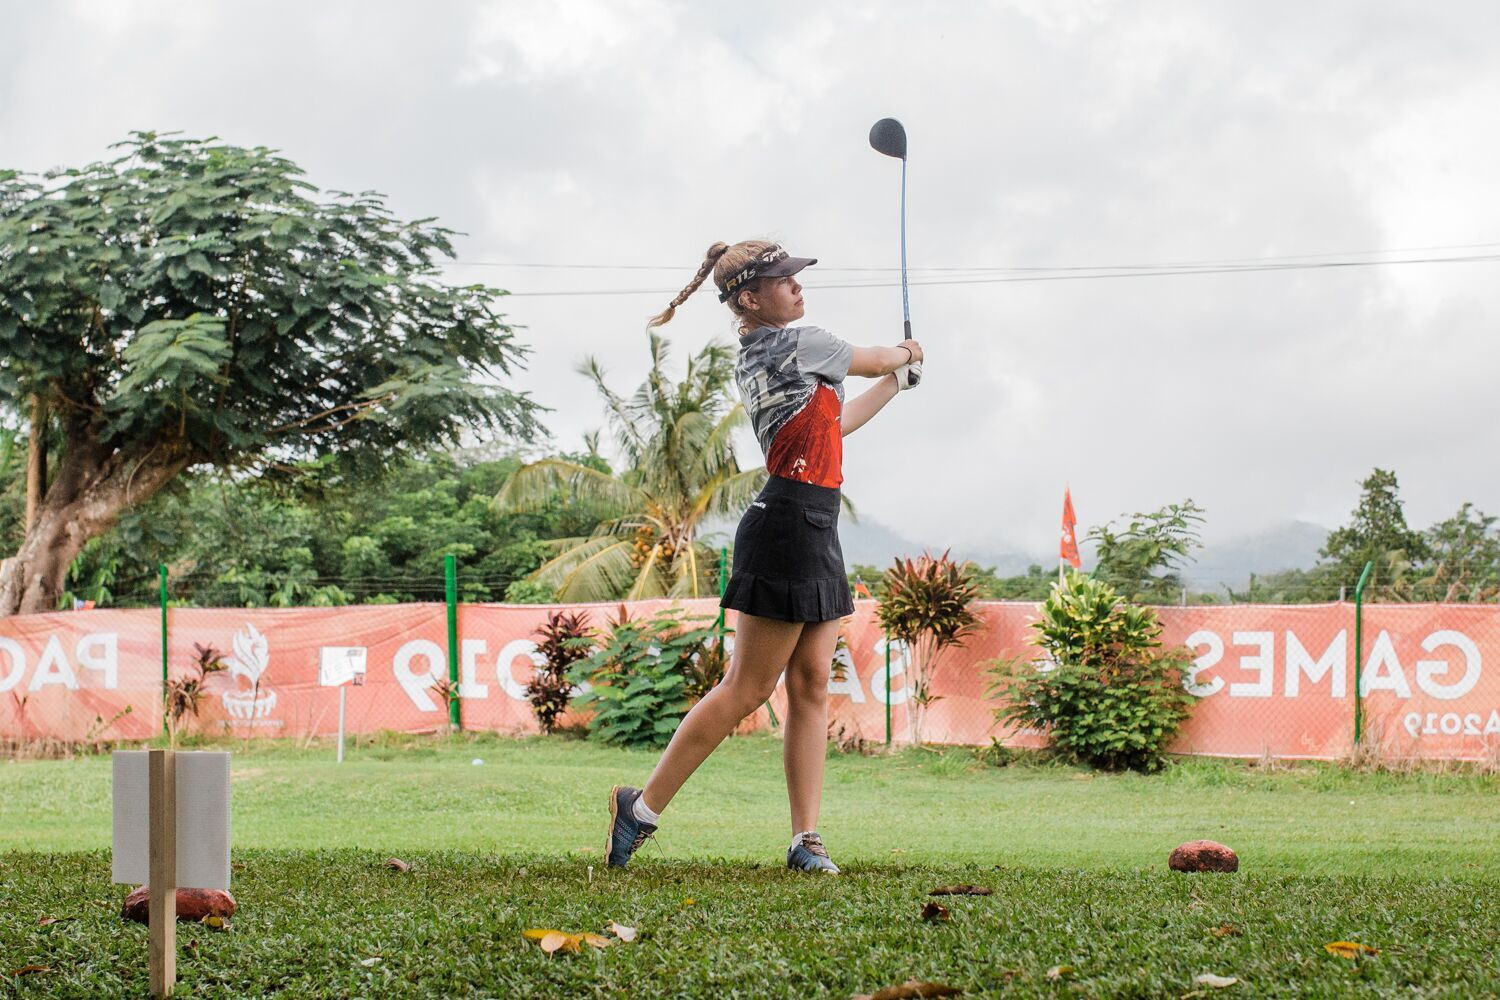 The sixth day of competition overall was also the final day in the golf ©Samoa 2019